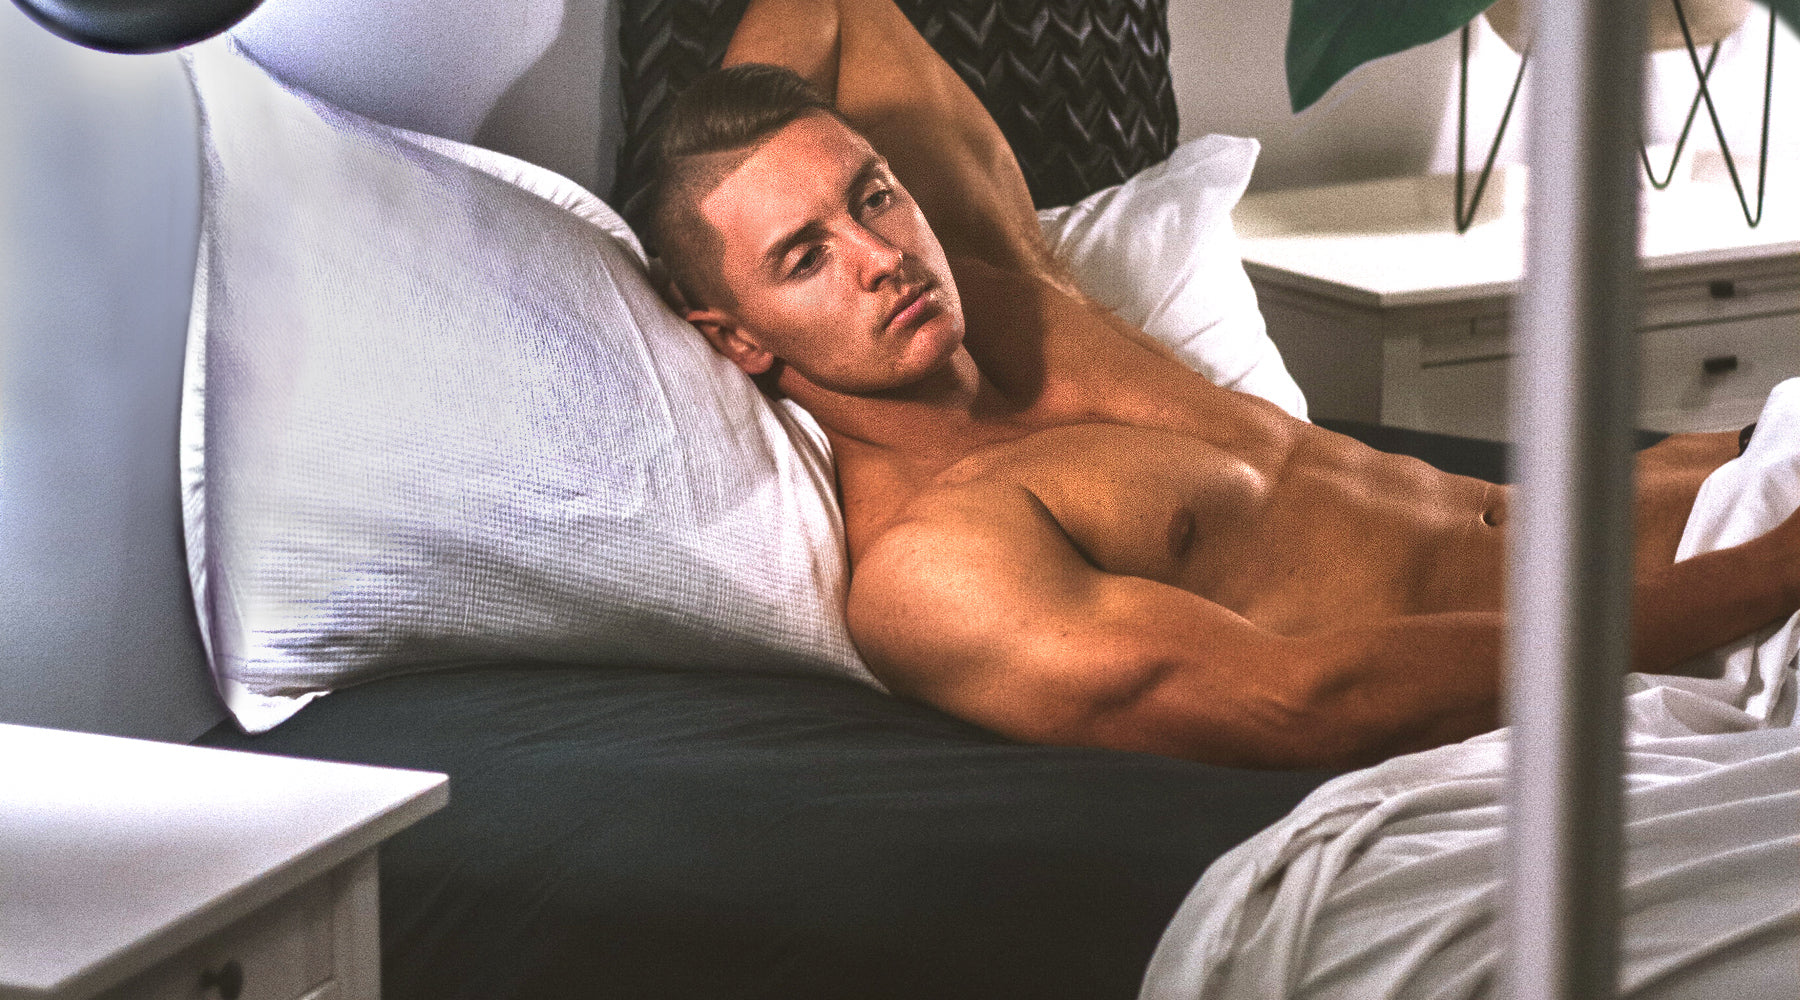 fit man in bed appearing pensive about PE